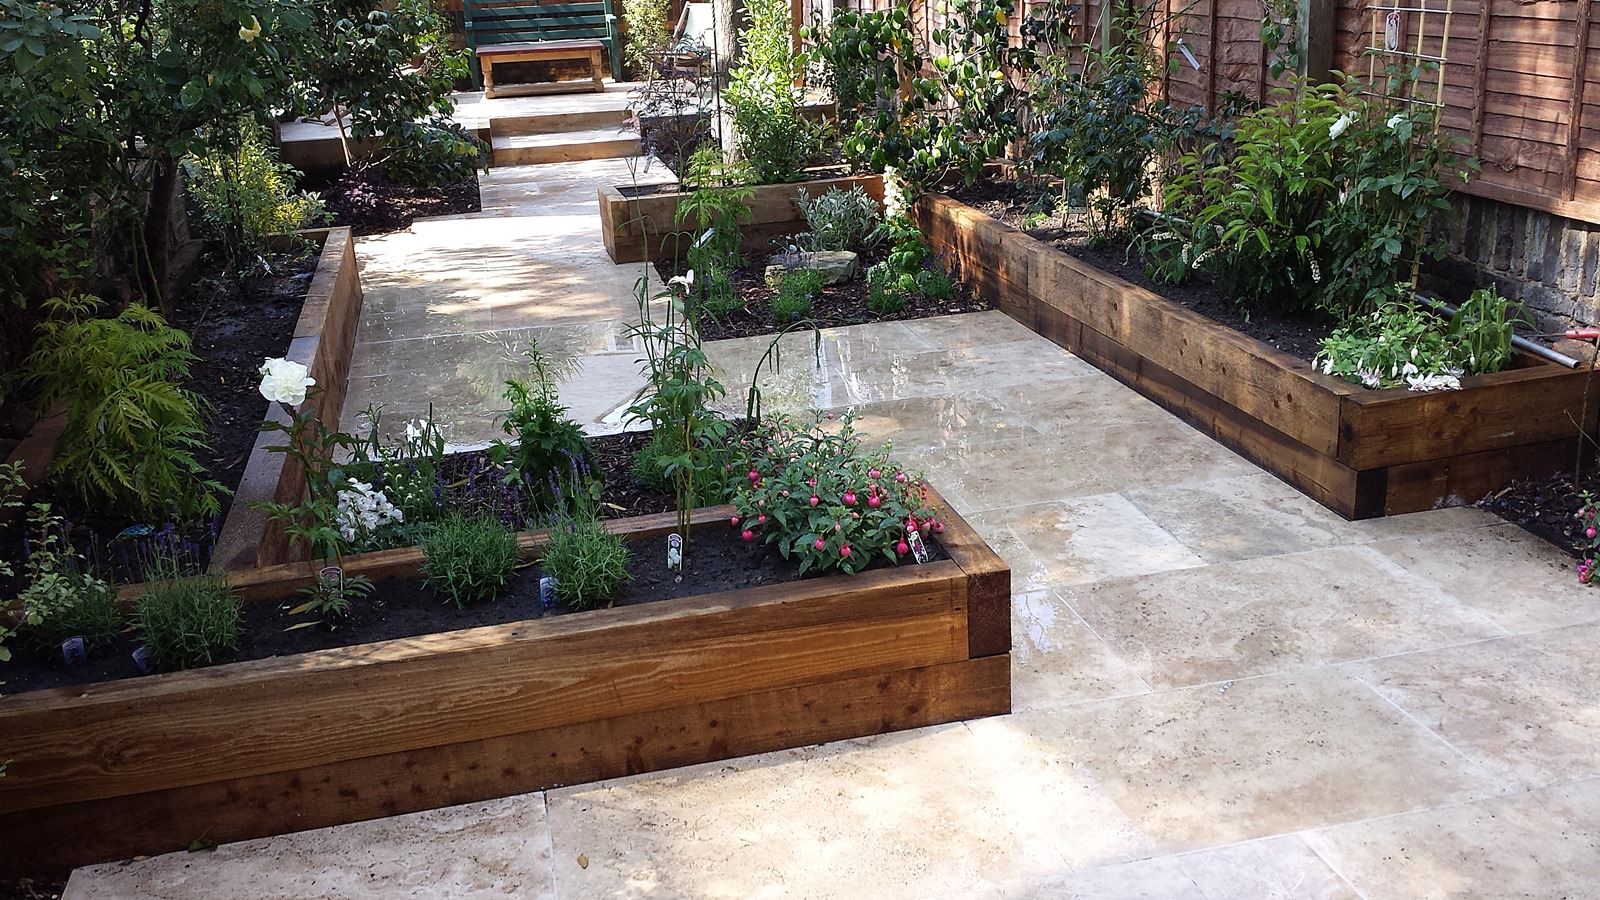 Travertine paving patio modern garden design landscaping for Patio garden ideas designs